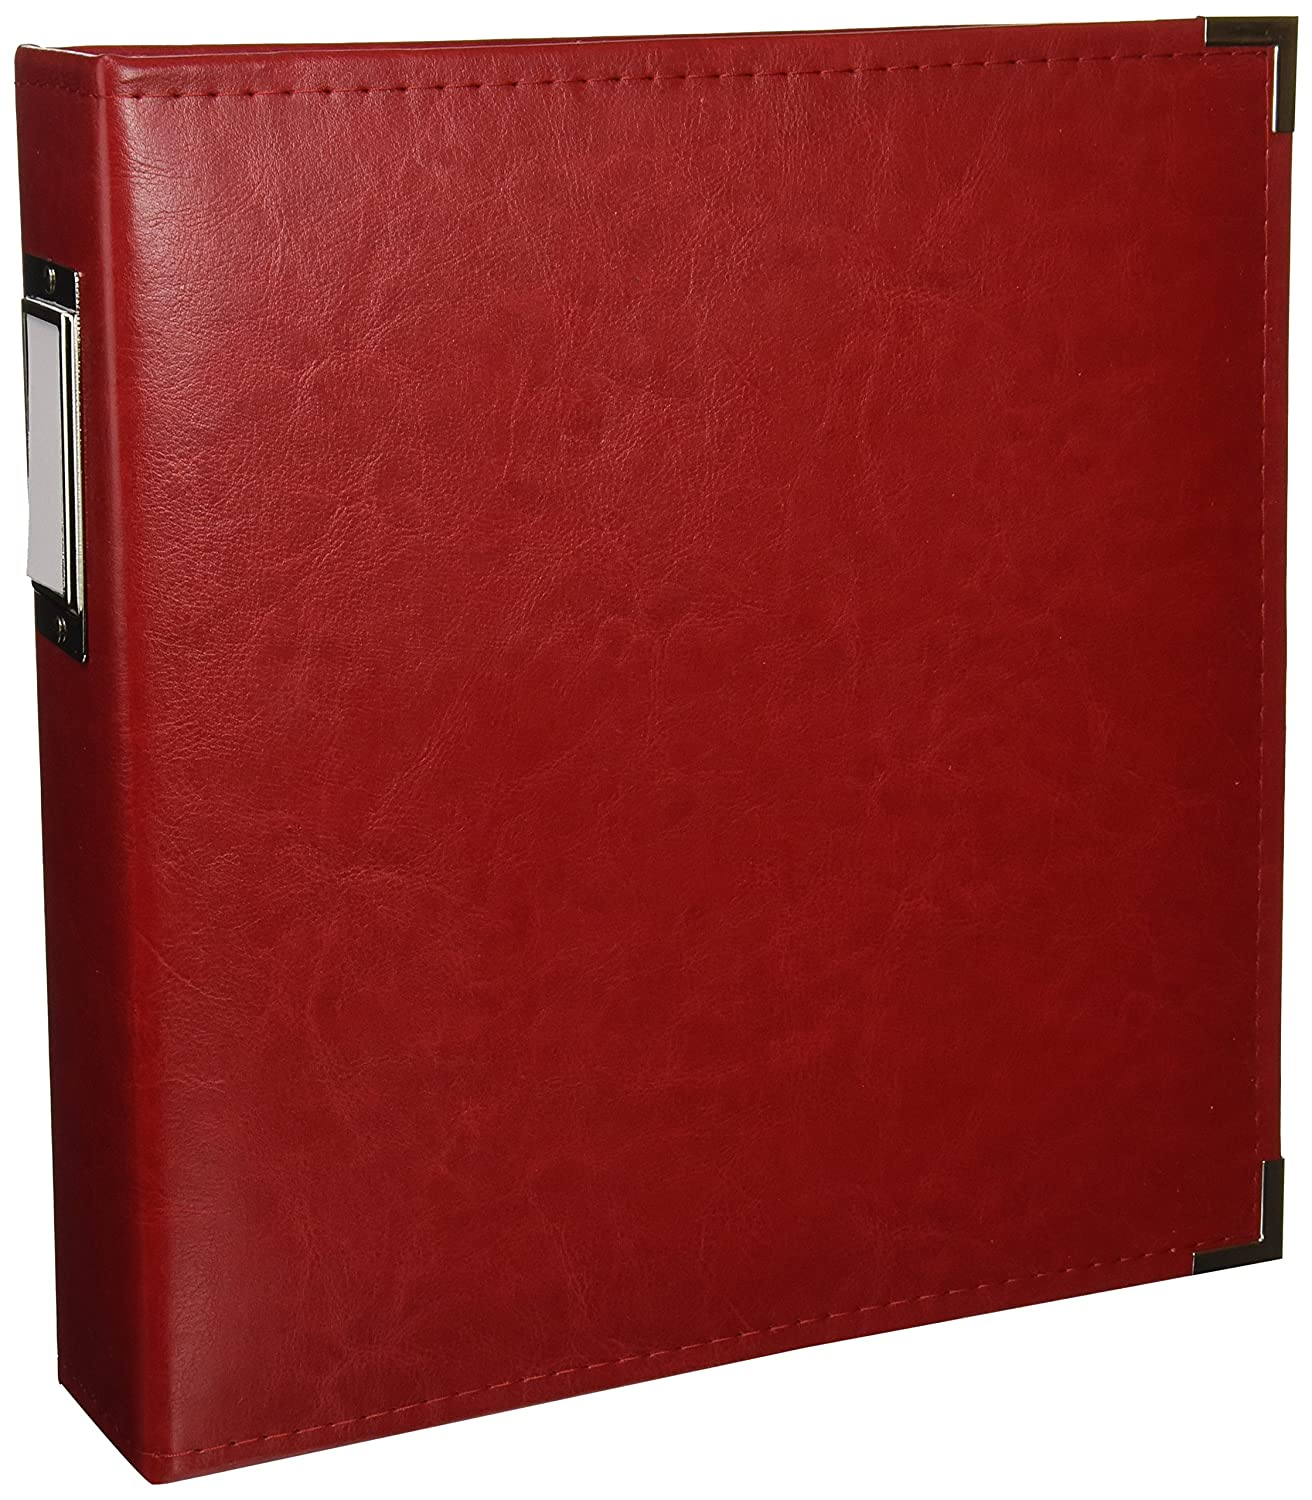 Amazon.com: We R Memory Keepers Classic Leather 3-Ring Album - 8.5 ...